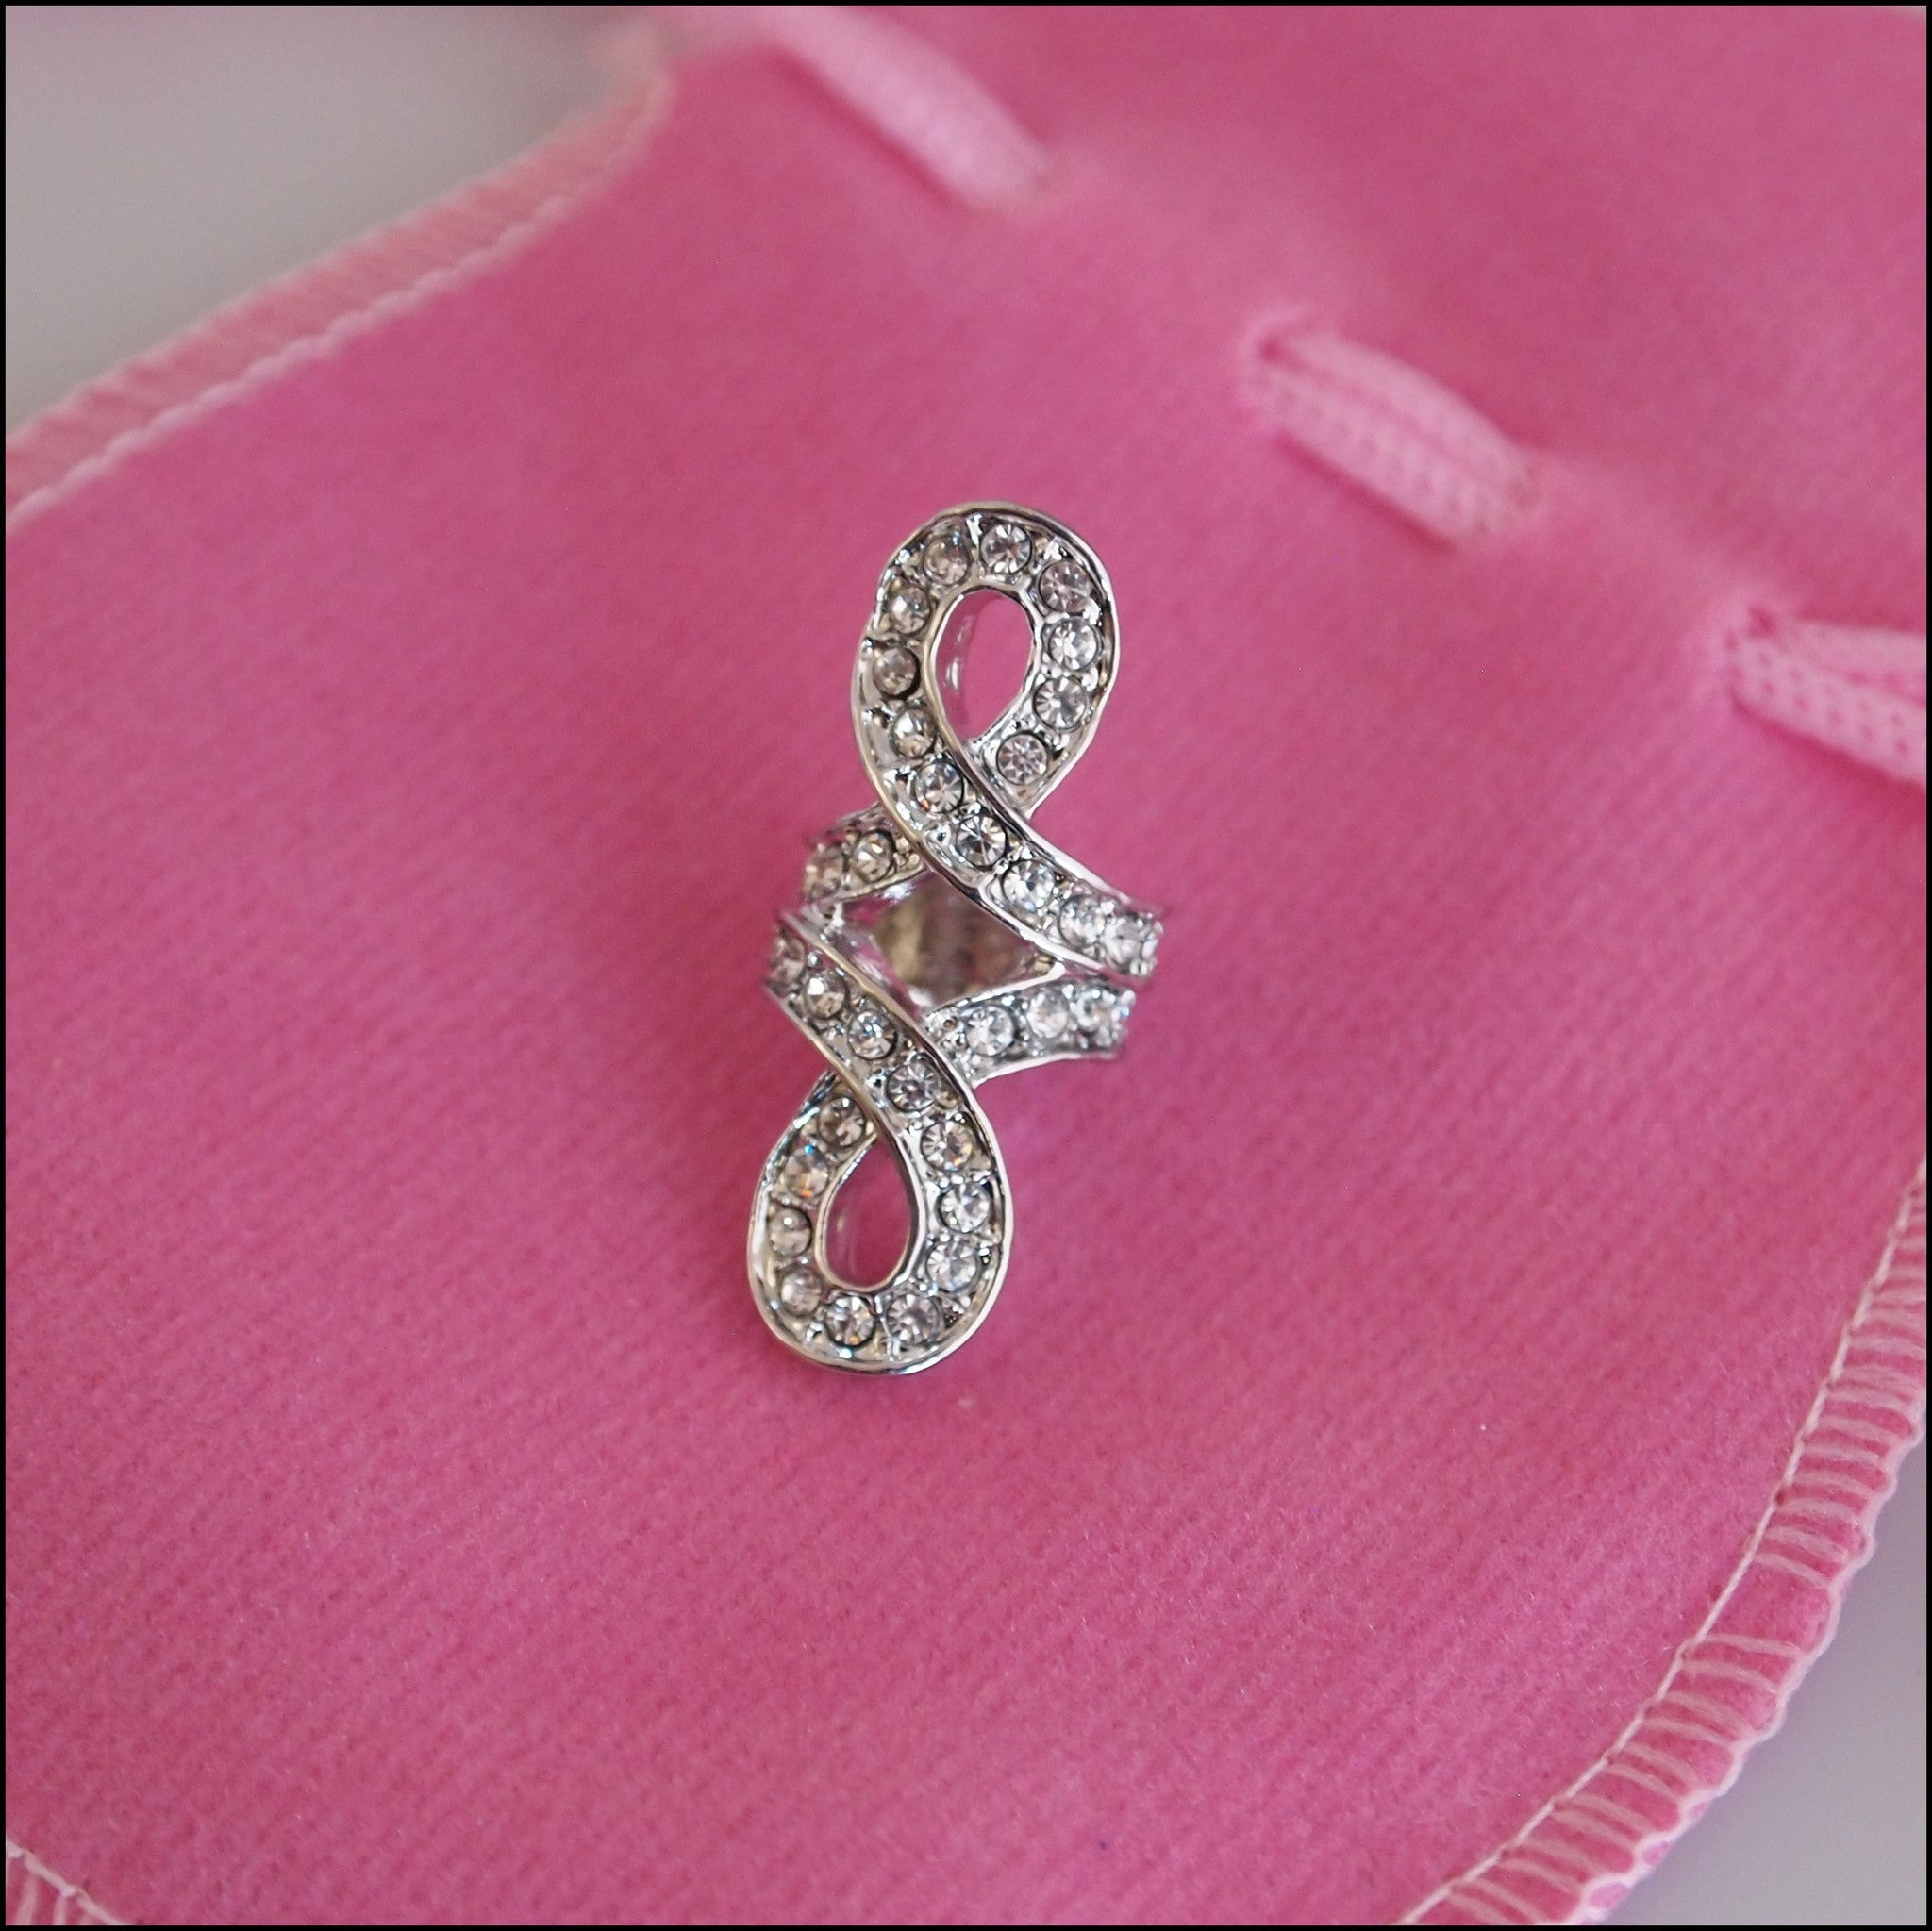 Large Crystal Knot Charm - Silver Plated - Find Something Special